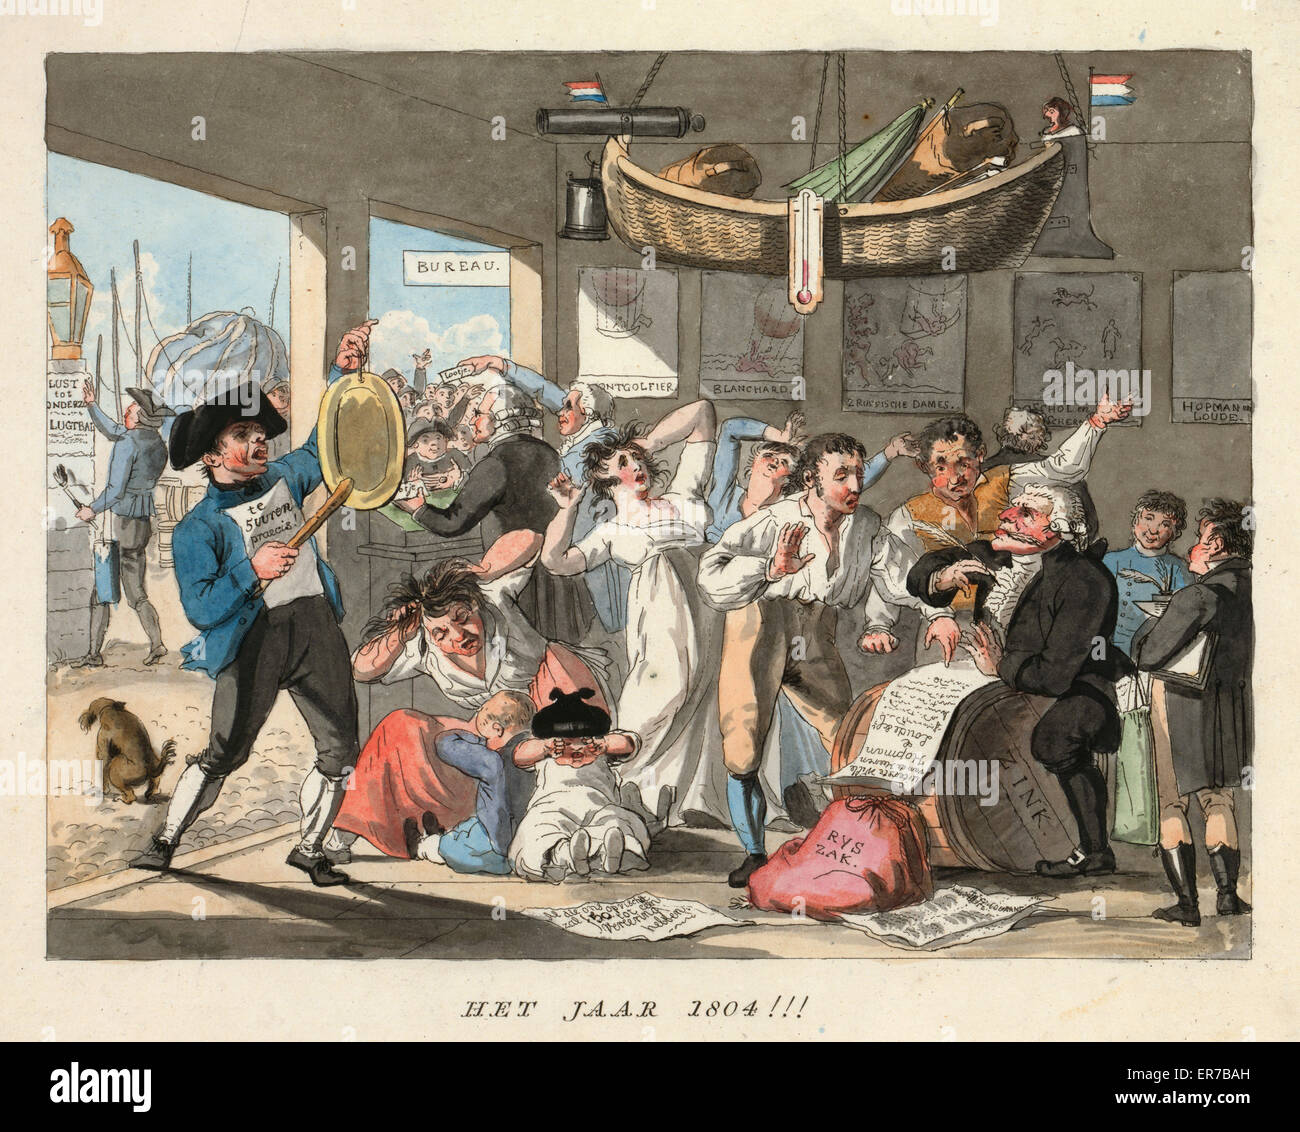 Het jaar 1804!!!. Dutch cartoon forecasts aeronautic events for the year 1804 by showing people in hysterics, possibly - Stock Image